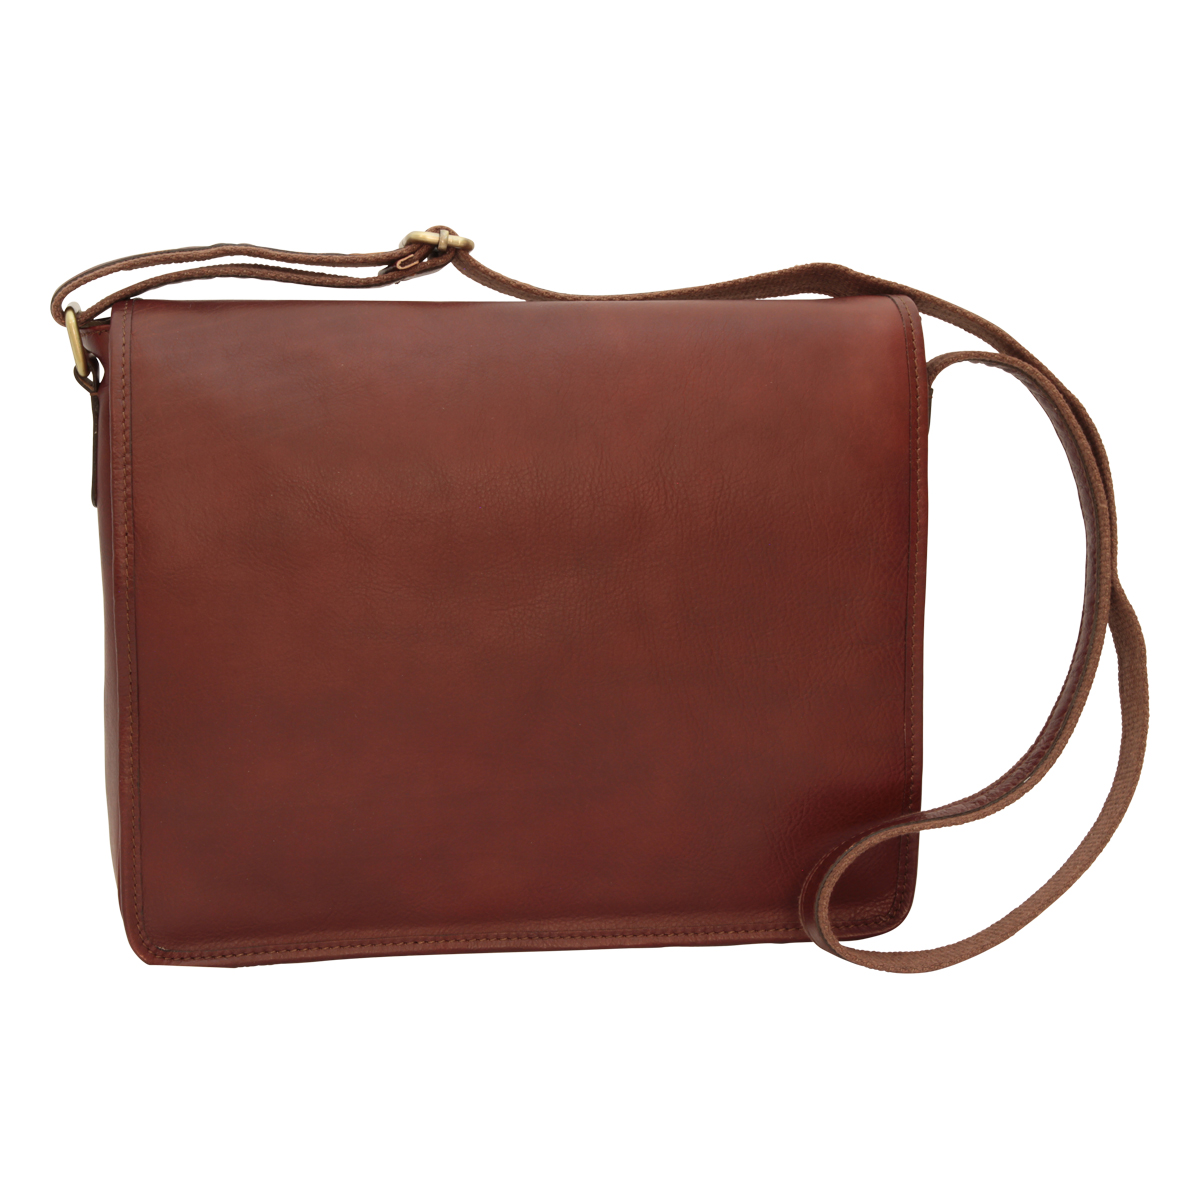 Full grain calfskin shoulder bag - brown | 032091MA UK | Old Angler Firenze